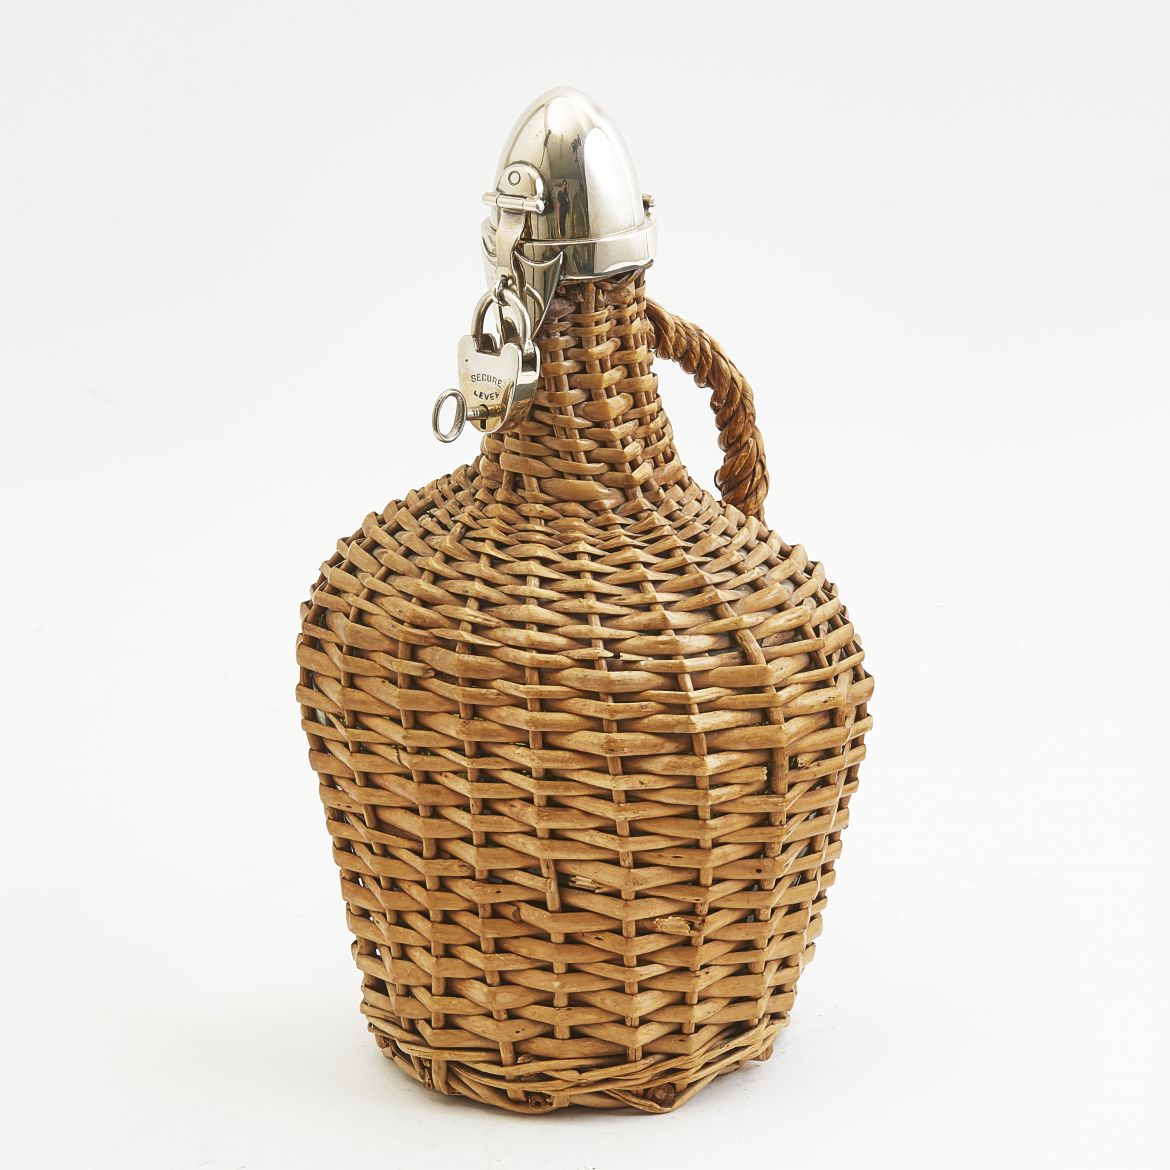 Heath and Middleton Wicker Covered Bottle